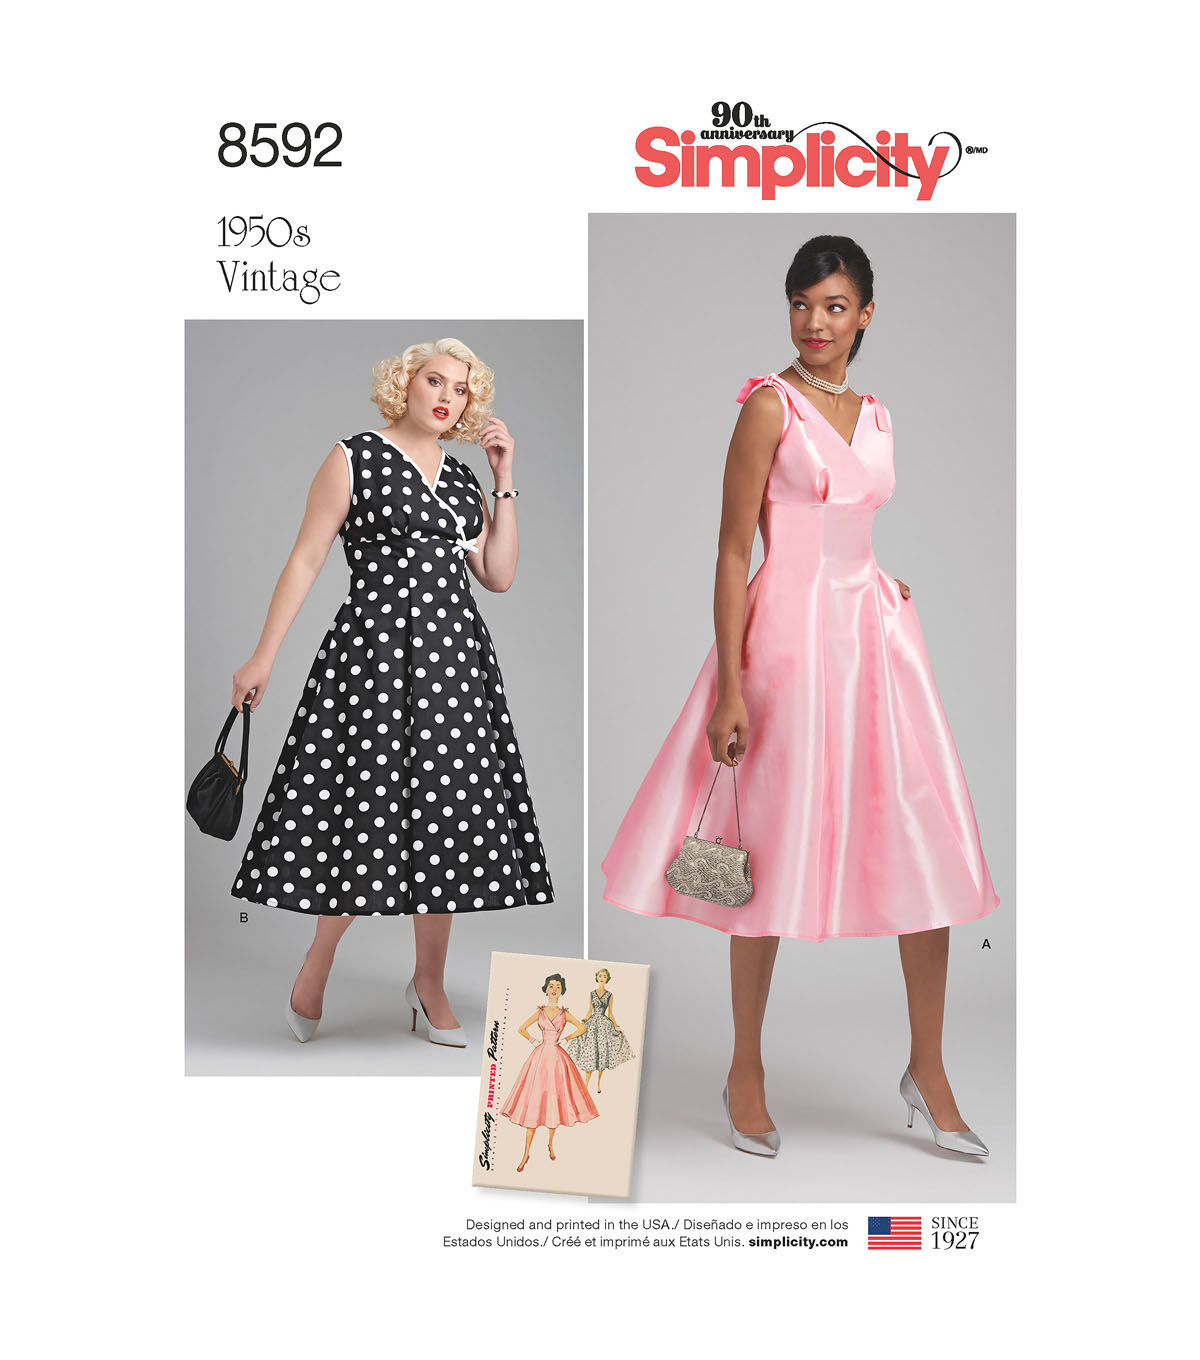 1950s Sewing Patterns | Dresses, Skirts, Tops, Mens Simplicity Pattern 8592 MissesWomens Vintage Dress - Size AA 10 - 18 $25.99 AT vintagedancer.com